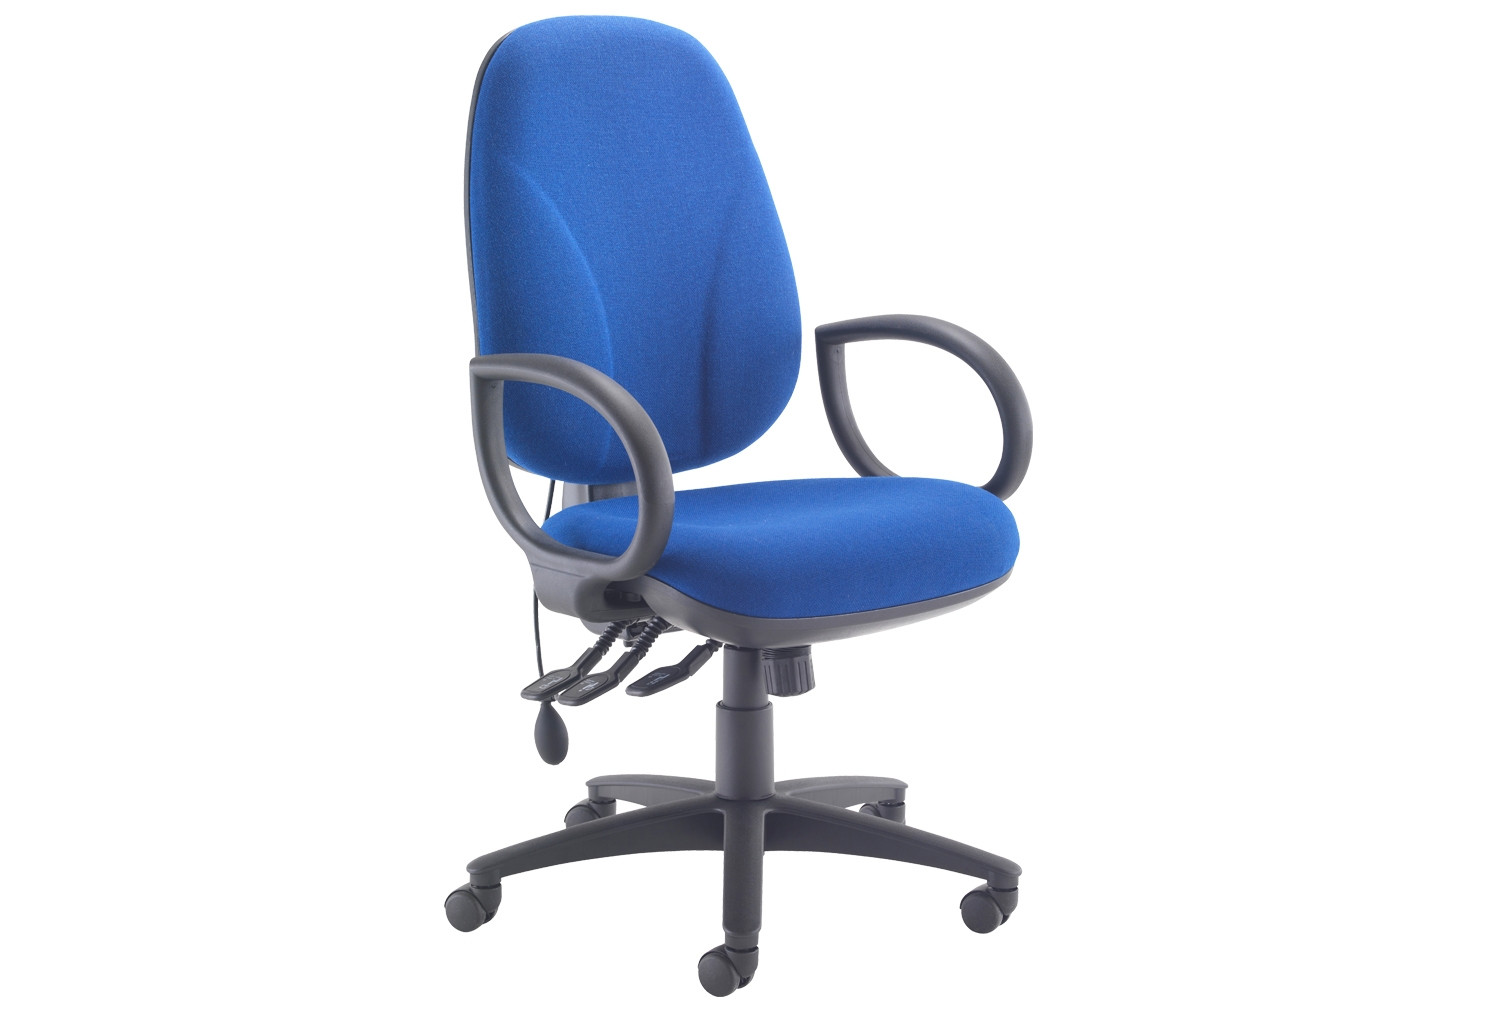 Next-Day Orchid Deluxe Lumbar Pump Ergonomic Operator Chair With Fixed Arms